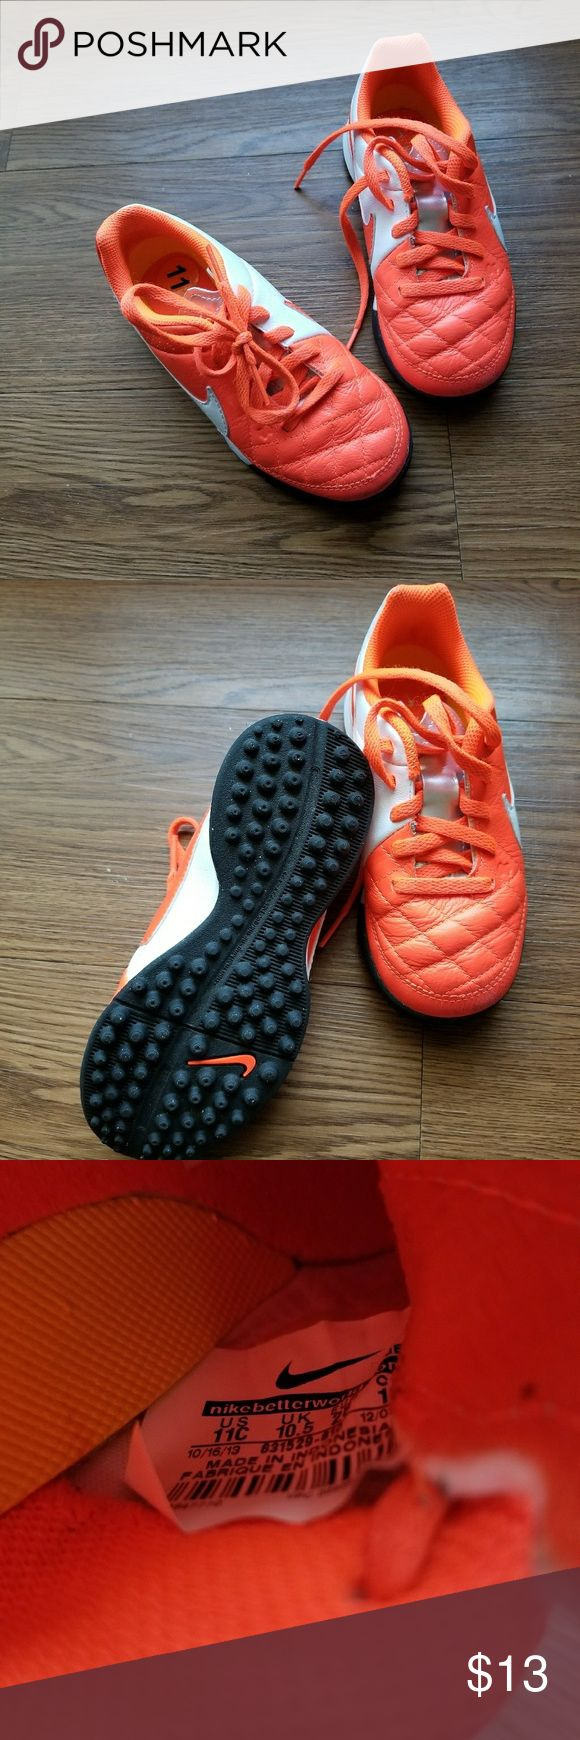 Nike Toddler Soccer Cleats 12 Nike Premier Pro Soccer Advantage shoes. Orange, white, & silver with conical suds for traction. Gently worn. Nike Shoes Sneakers